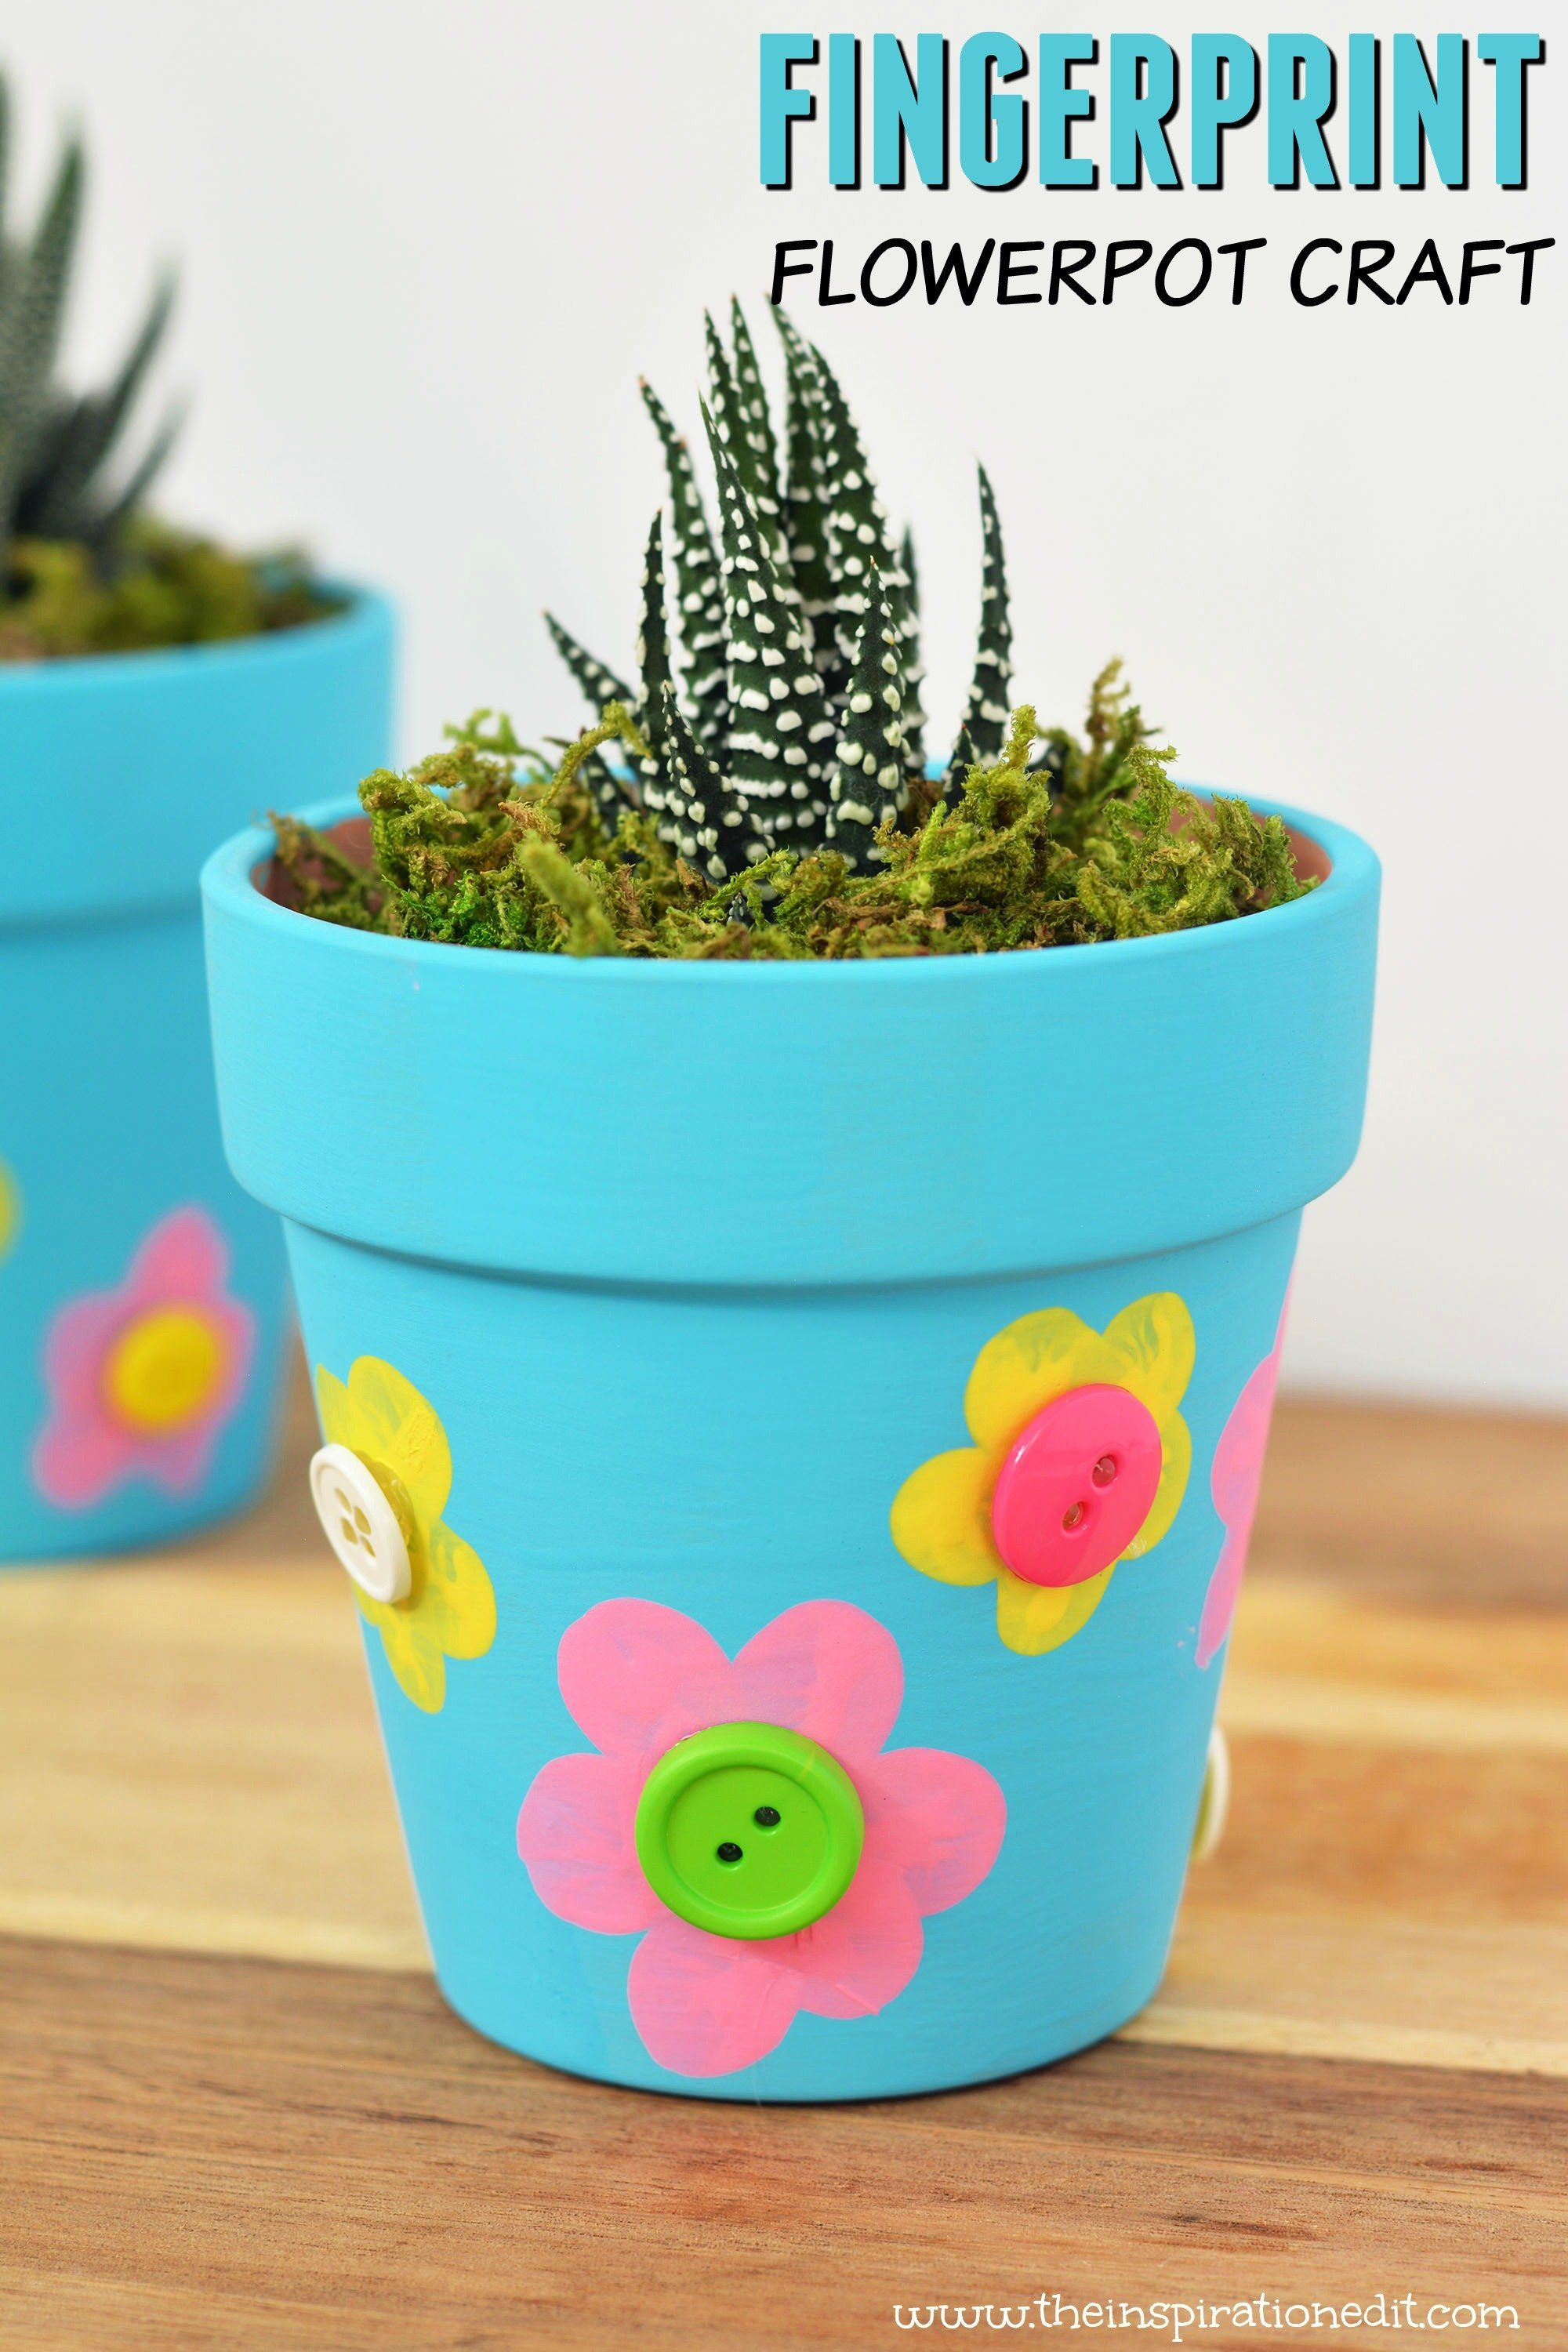 Mothers Day Flower Pot Craft For Kids · The Inspiration Edit